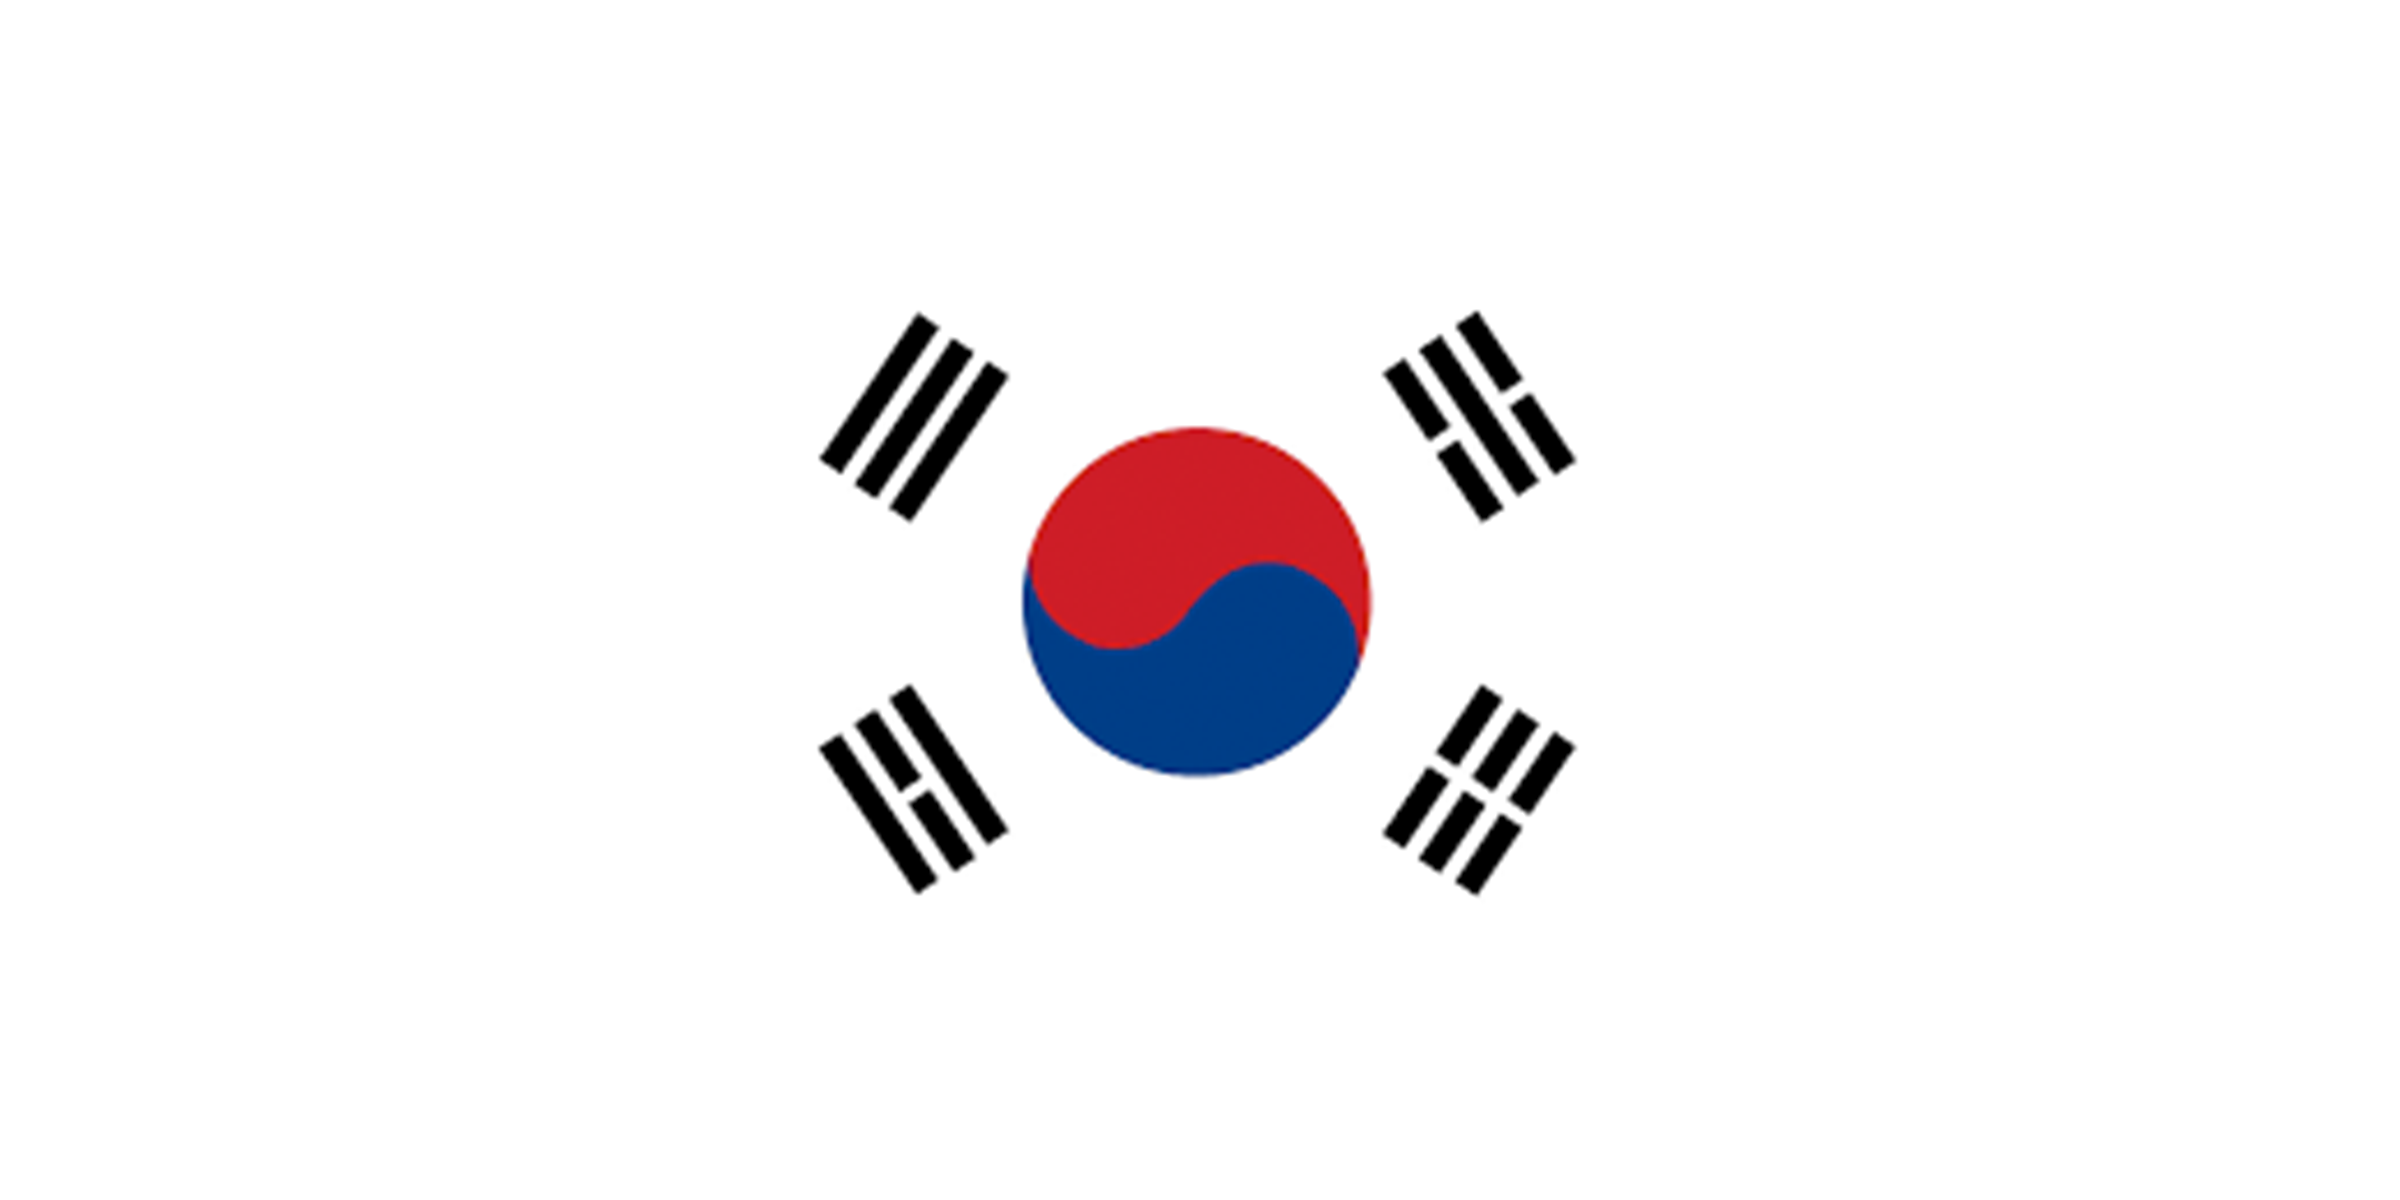 13-Korean Flag.png